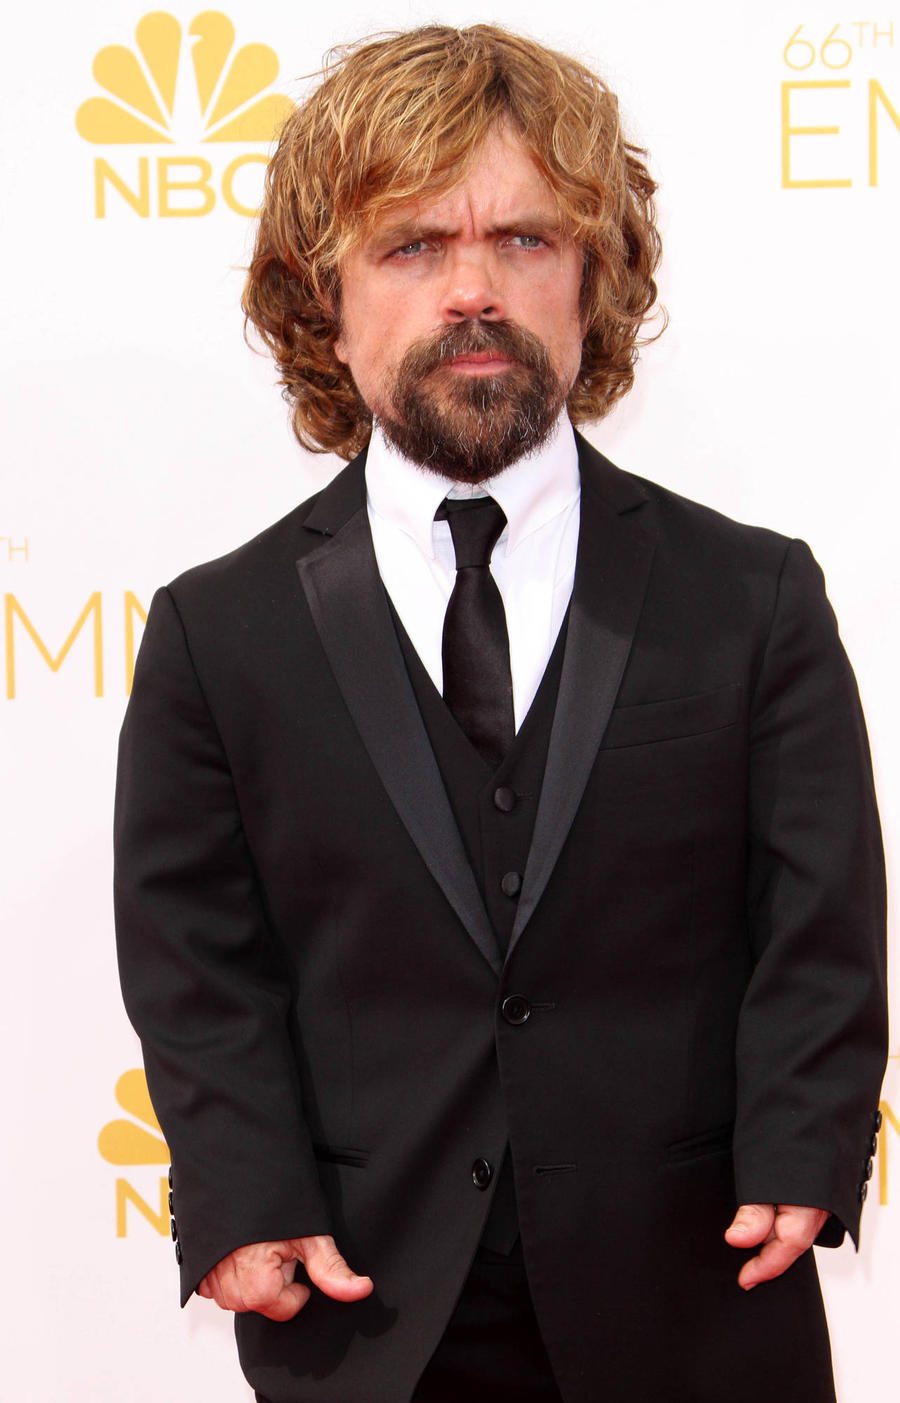 Peter Dinklage Gets Naked And Afraid For Saturday Night Live